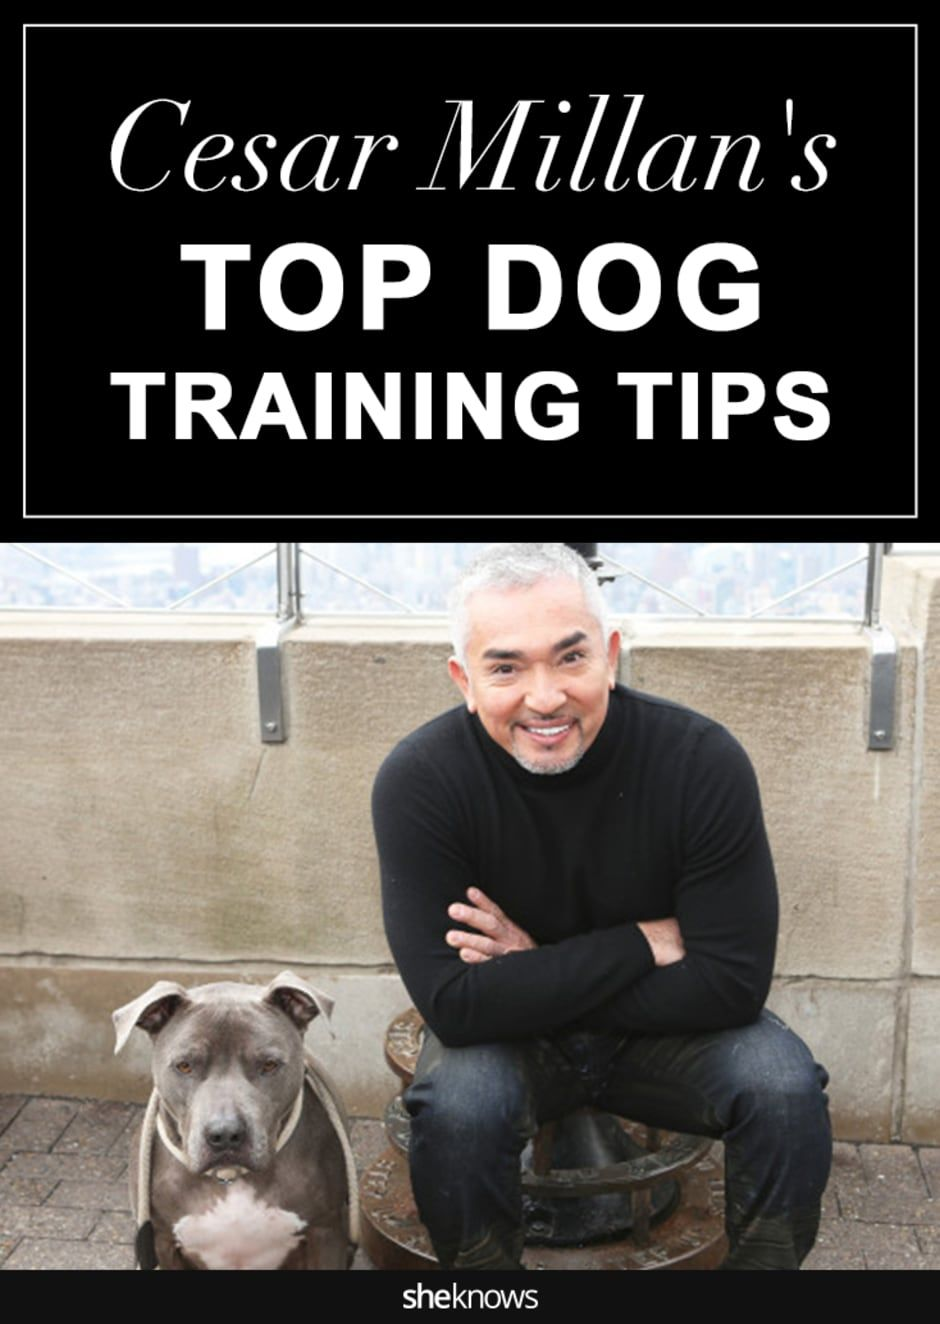 When The Dog Whisperer Himself Offers Advice On How To Train Your